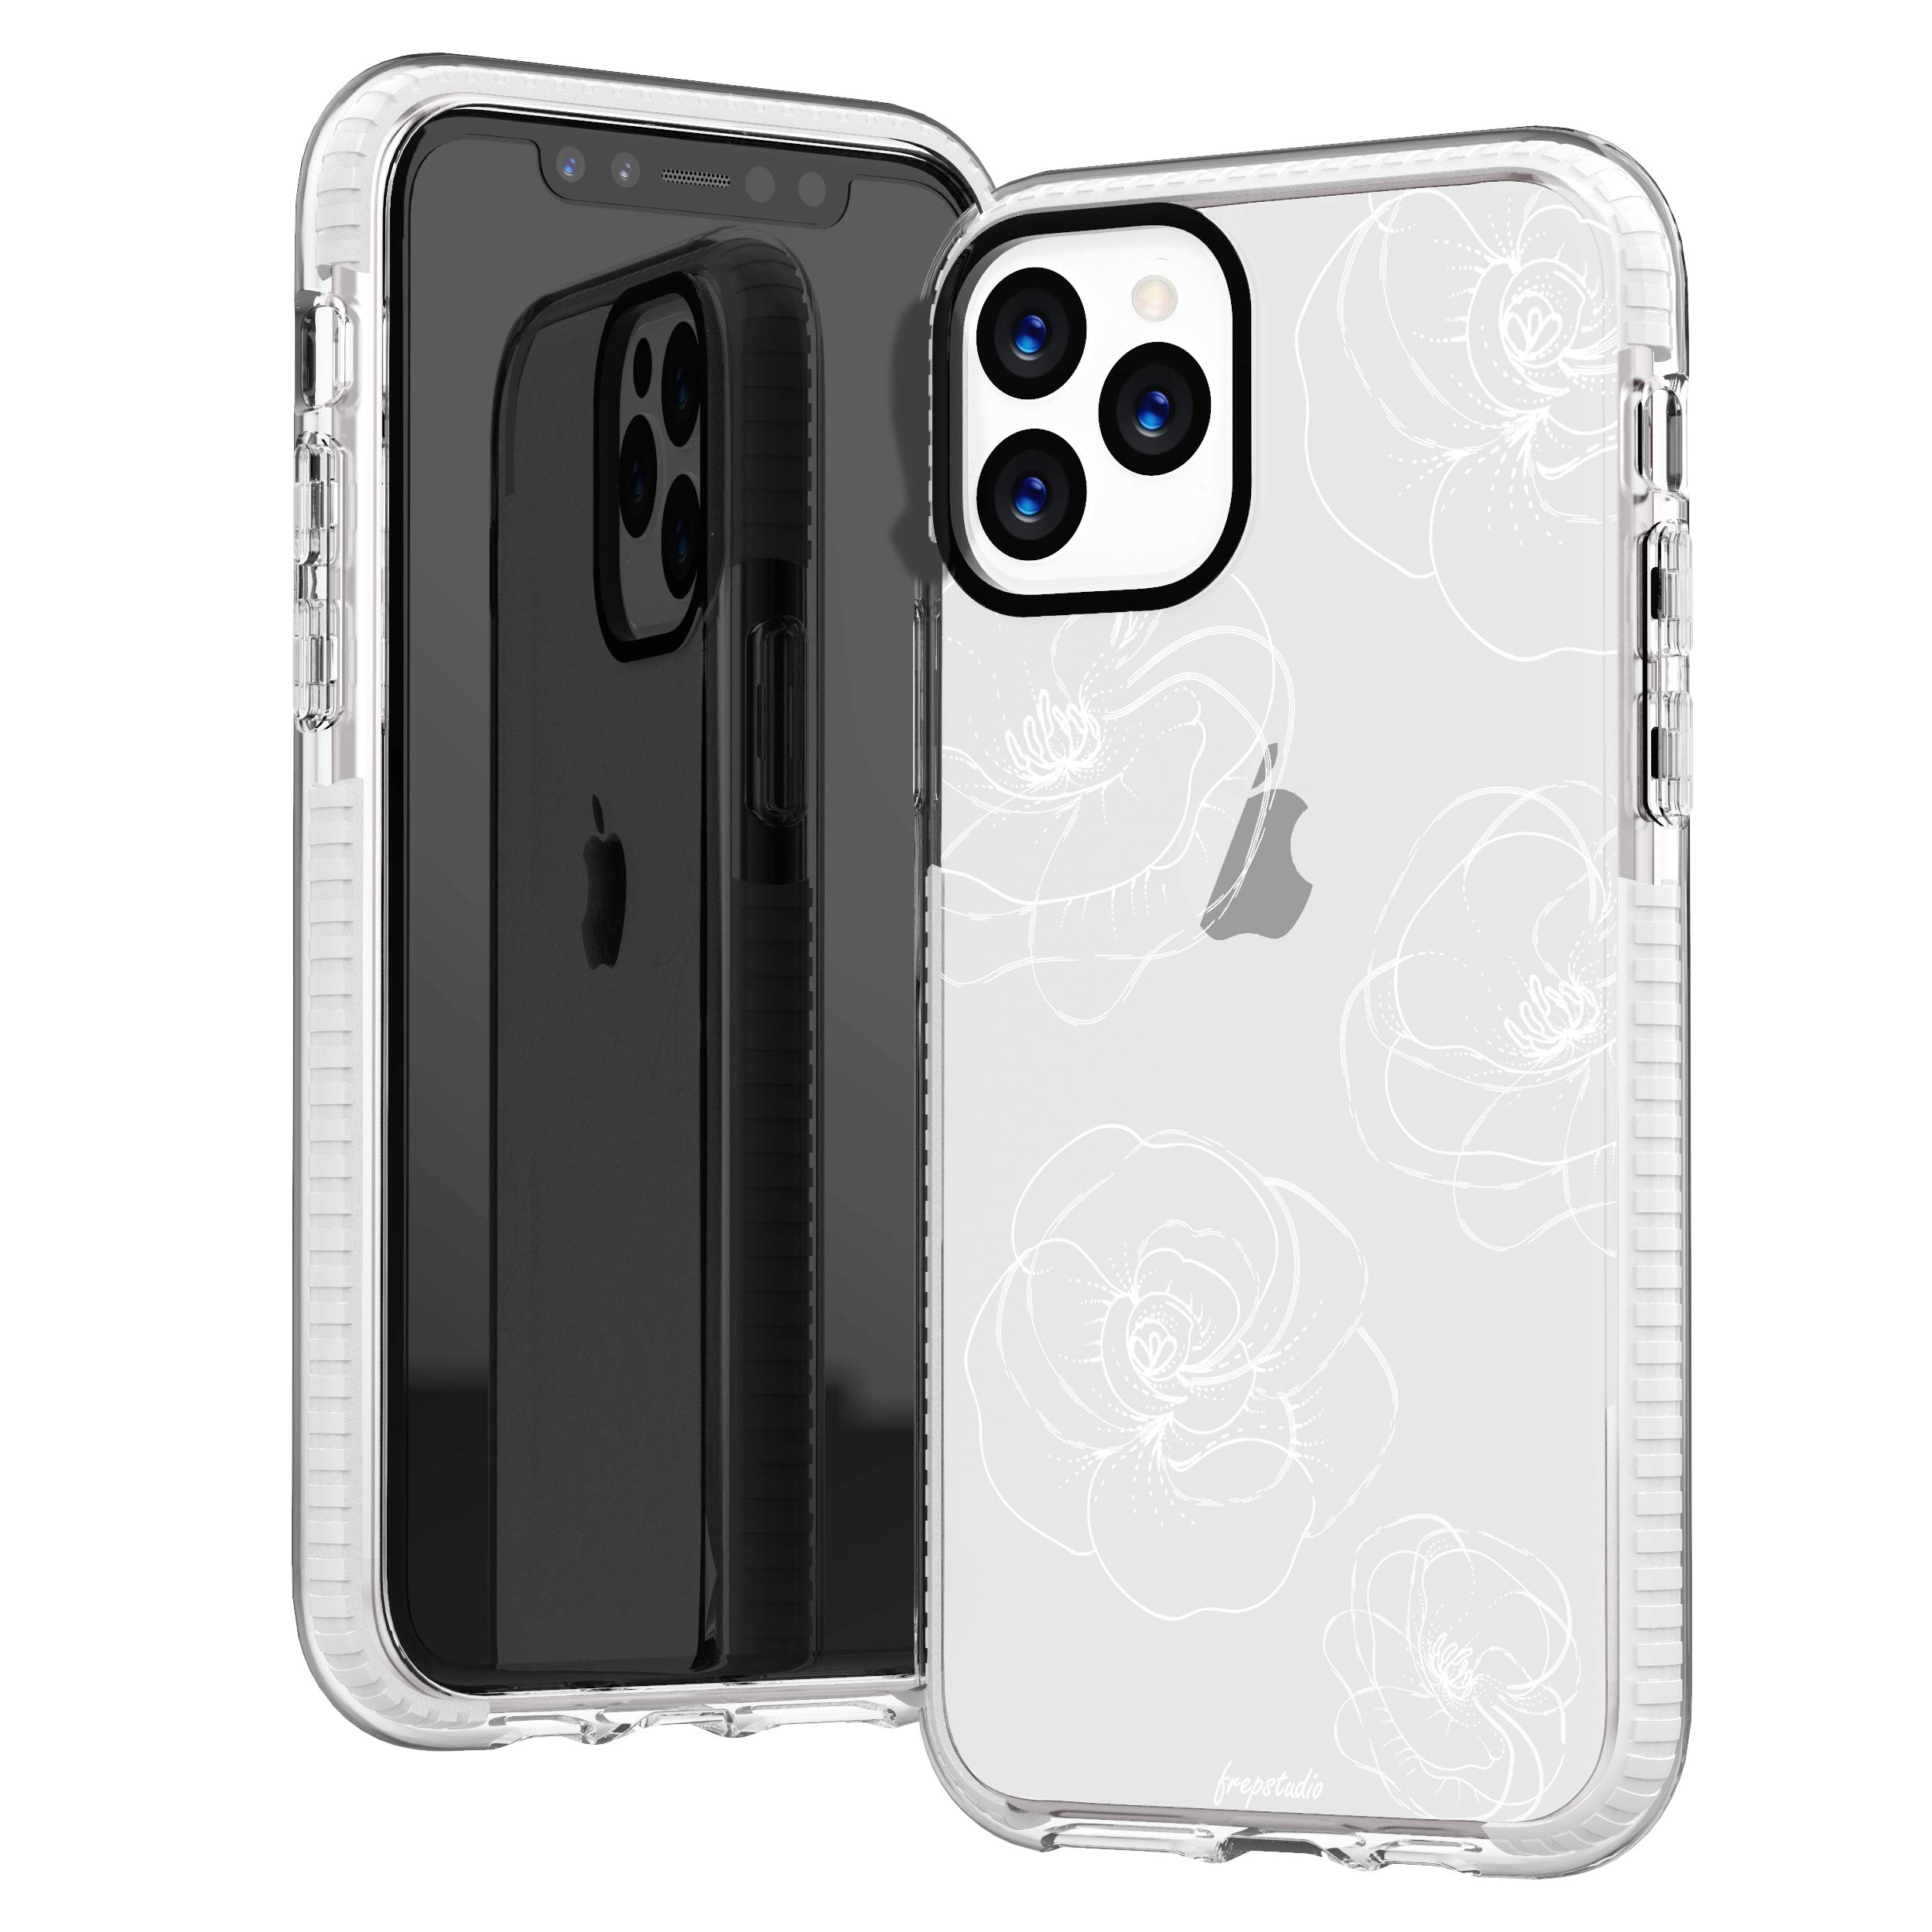 iPhone 11 Pro Max Case,Girls Women Cute Trendy Girly Line-Drawing Elegant Classical White Roses Floral Flowers Daisy Less is More Soft Protective Clear Design Case Compatible for iPhone 11 Pro Max